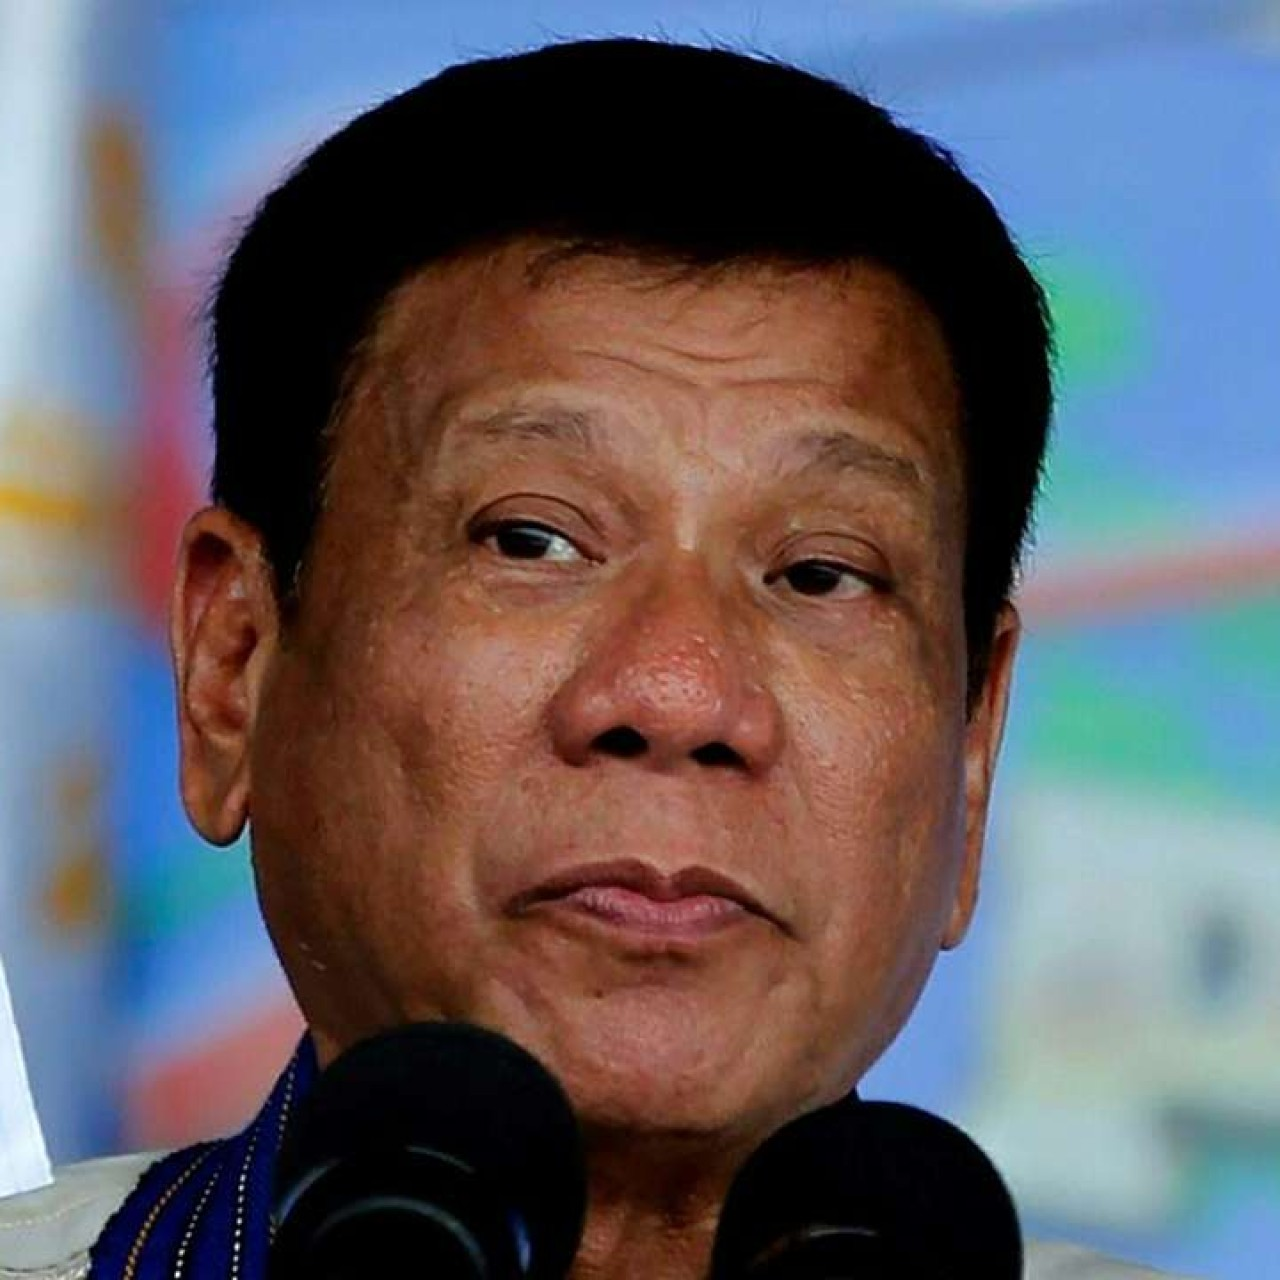 China the lair of major drug lords, says Philippines' Duterte